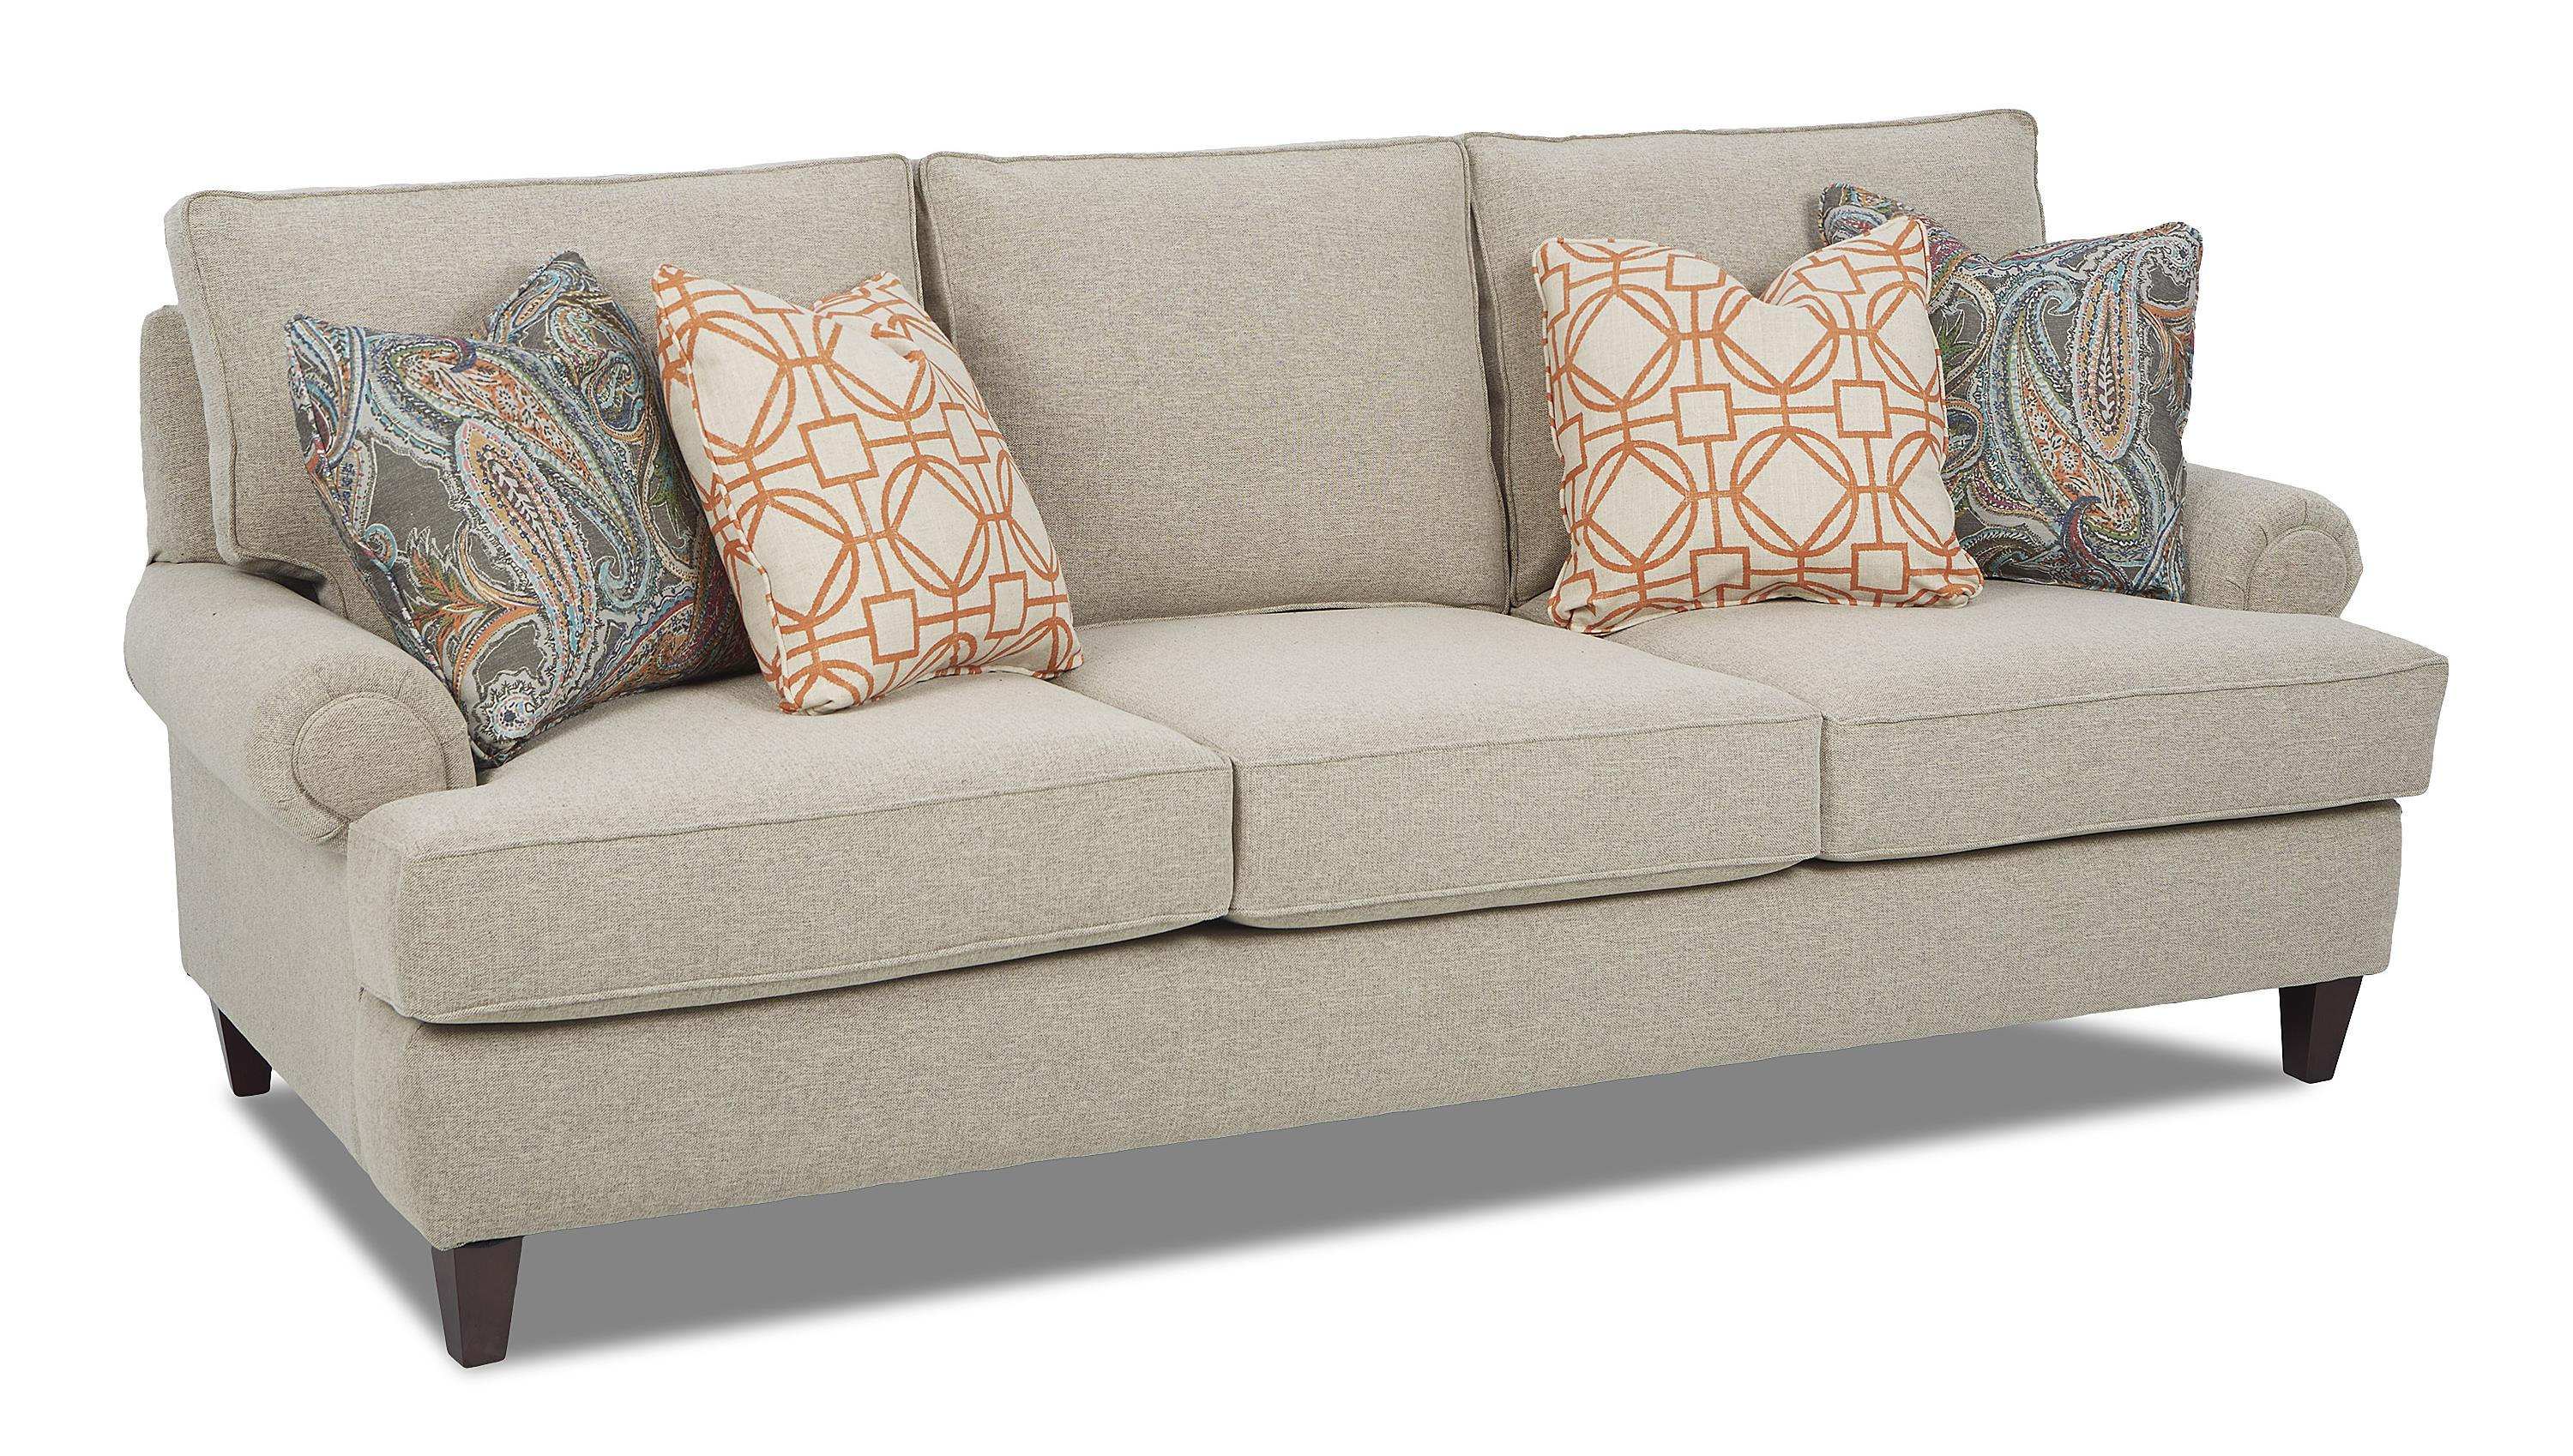 Klaussner Madison Traditional Stationary Sofa with Rolled Arms